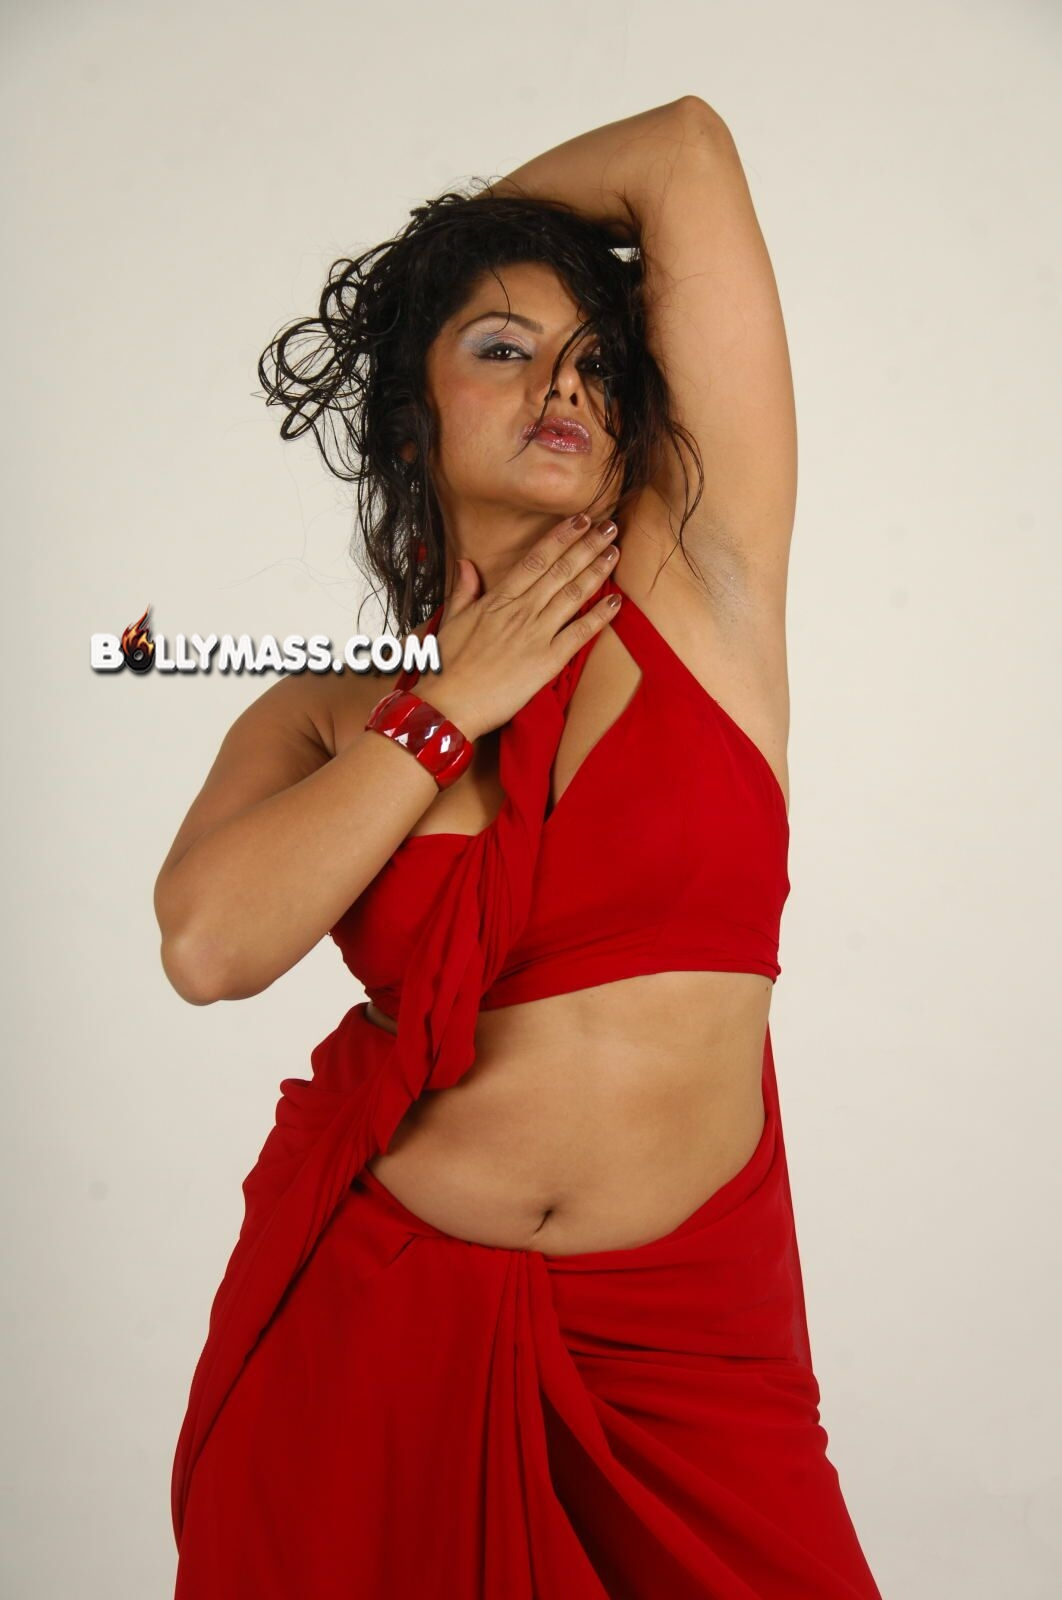 http://4.bp.blogspot.com/-EErNQ40BERg/T-c6sGdgwtI/AAAAAAAASII/h5Zk6KBTPVI/s1600/0027-WWW.BOLLYMASS.COM-Actress+Swathika+in+Red+Hot+Saree+Navel+Cleavage+Boobs+Latest+Photoshoot+Stills+Image+Photo+Pics+Gallery+Wallpaper+Poster.JPG